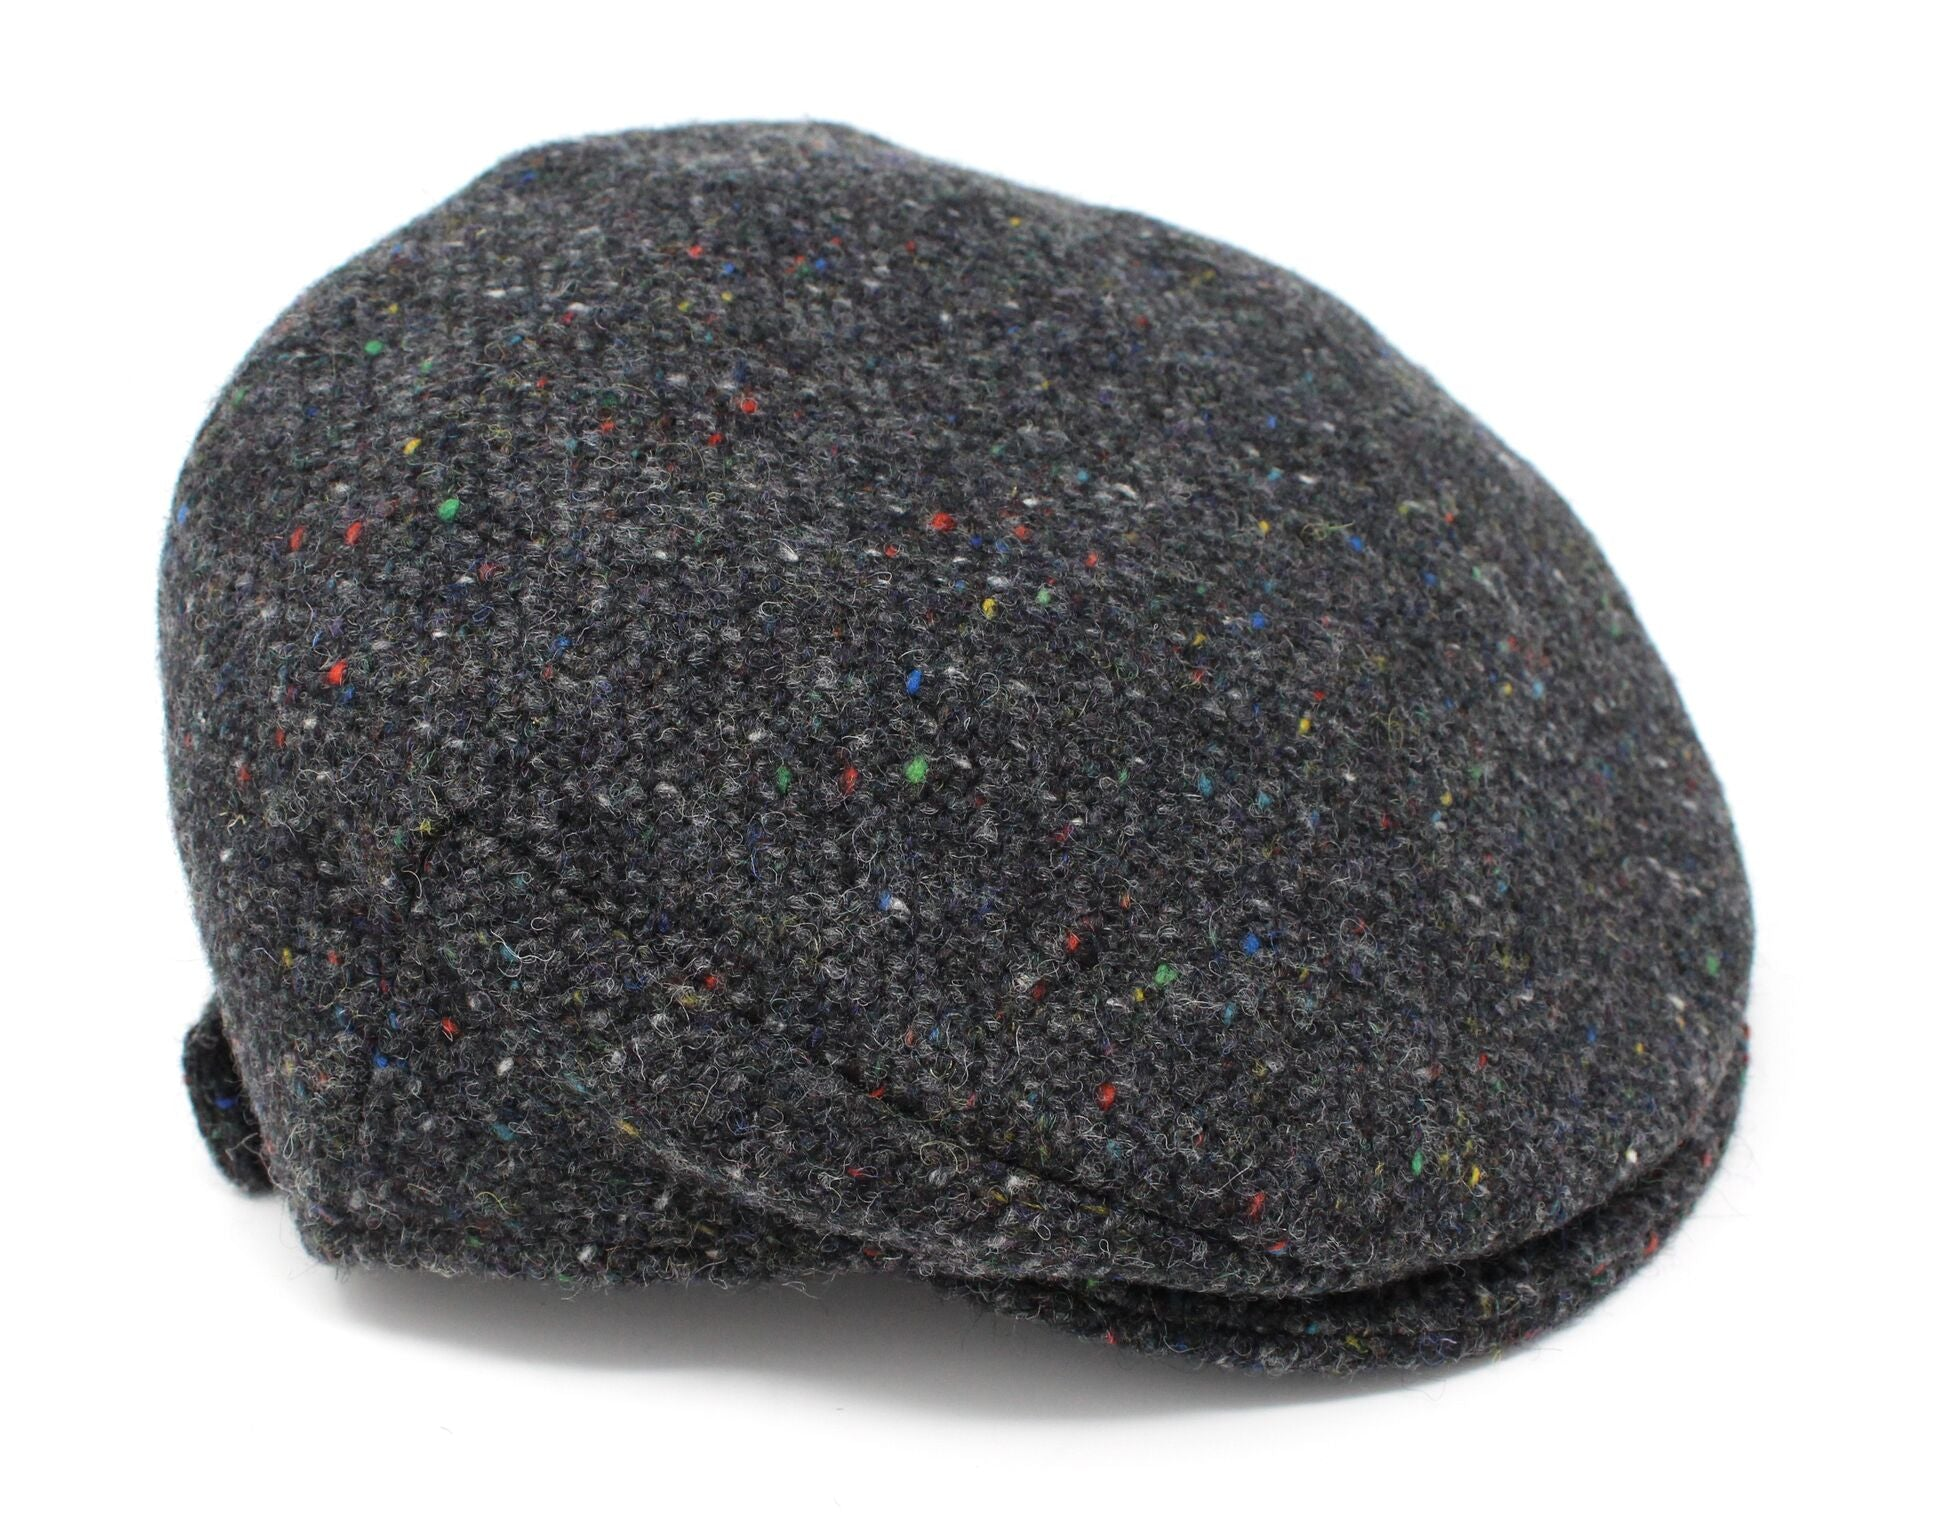 Children's Vintage Style Tweed Cap